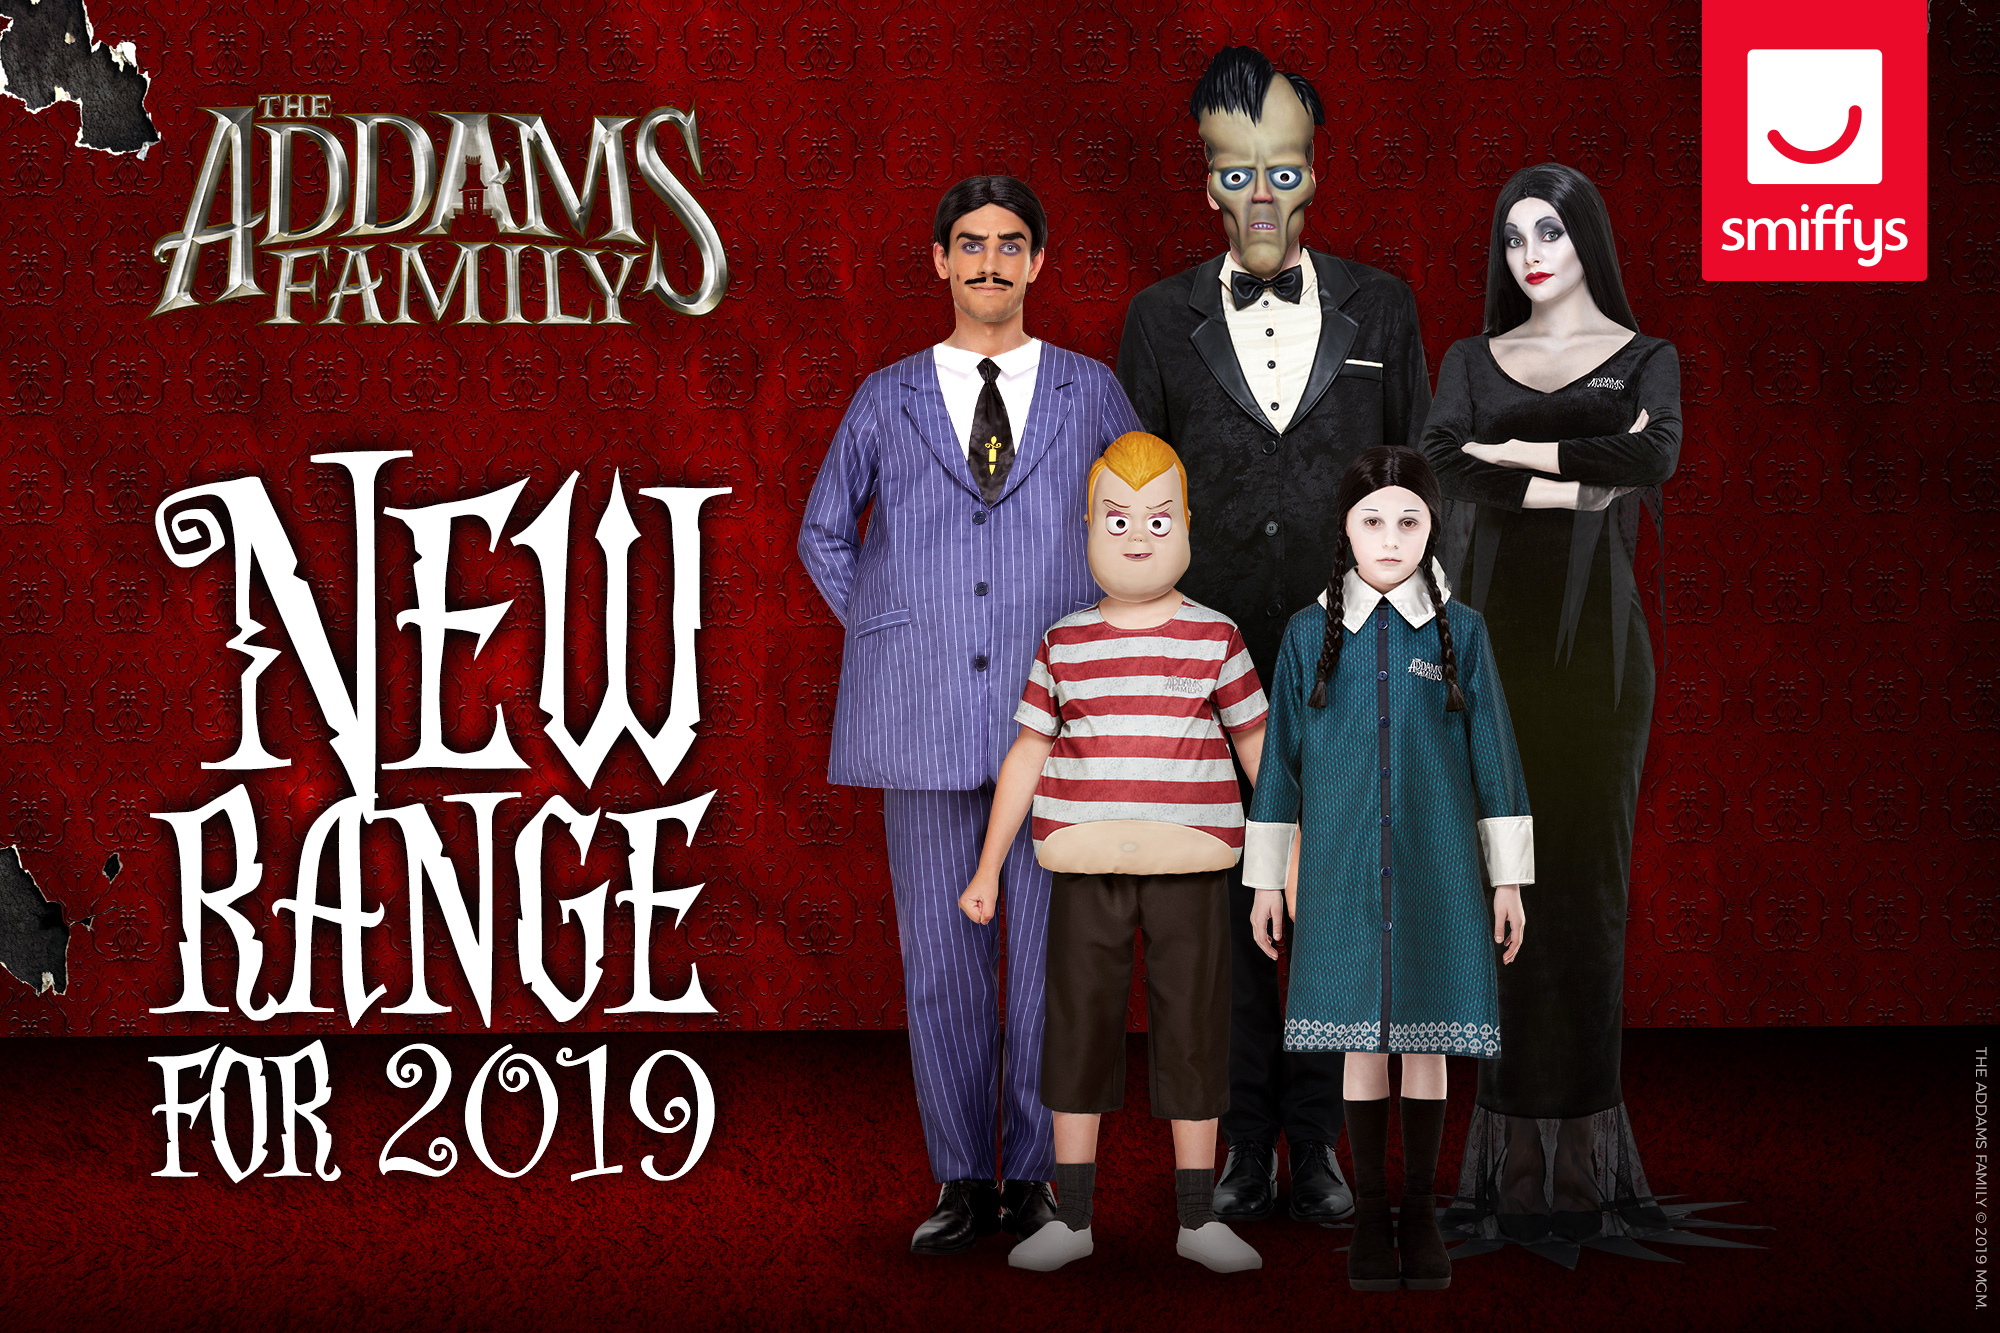 SMIFFYS PARTNERS WITH MGM ON FANTASTICALLY SPOOKY LINE OF THE ADDAMS FAMILY COSTUMES